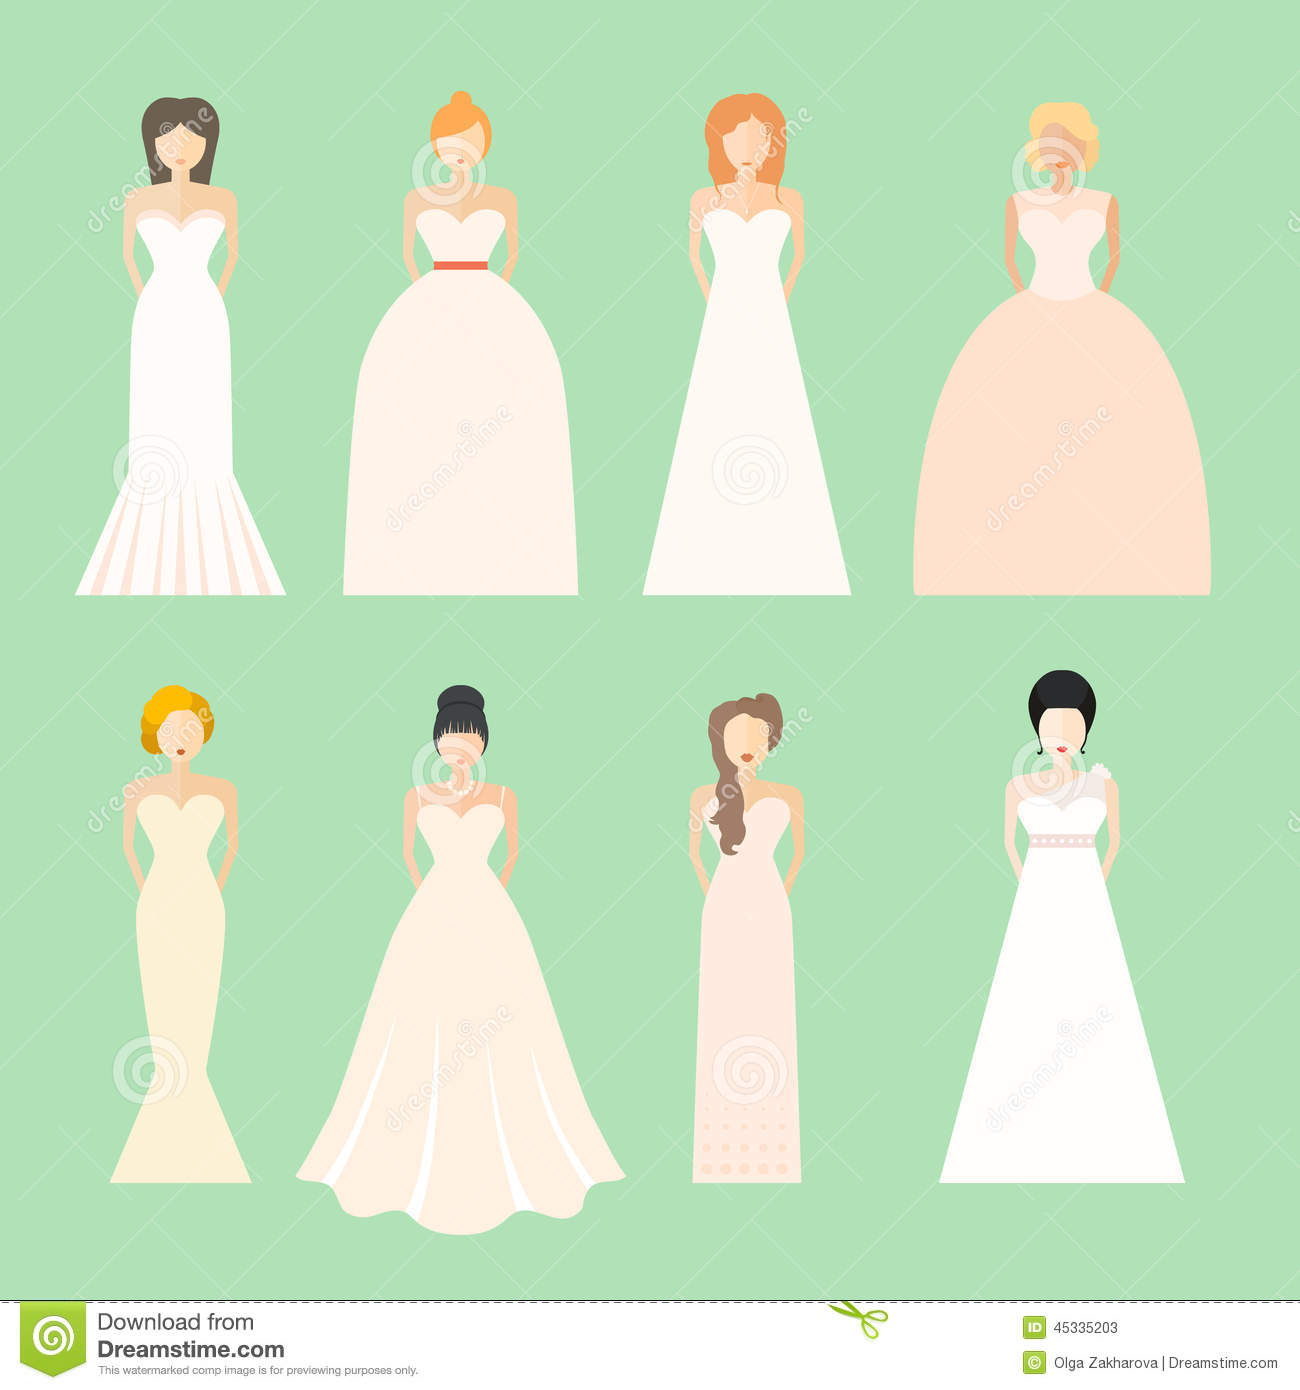 Brids in wedding dresses stock vector illustration of icon 45335203 brids in wedding dresses junglespirit